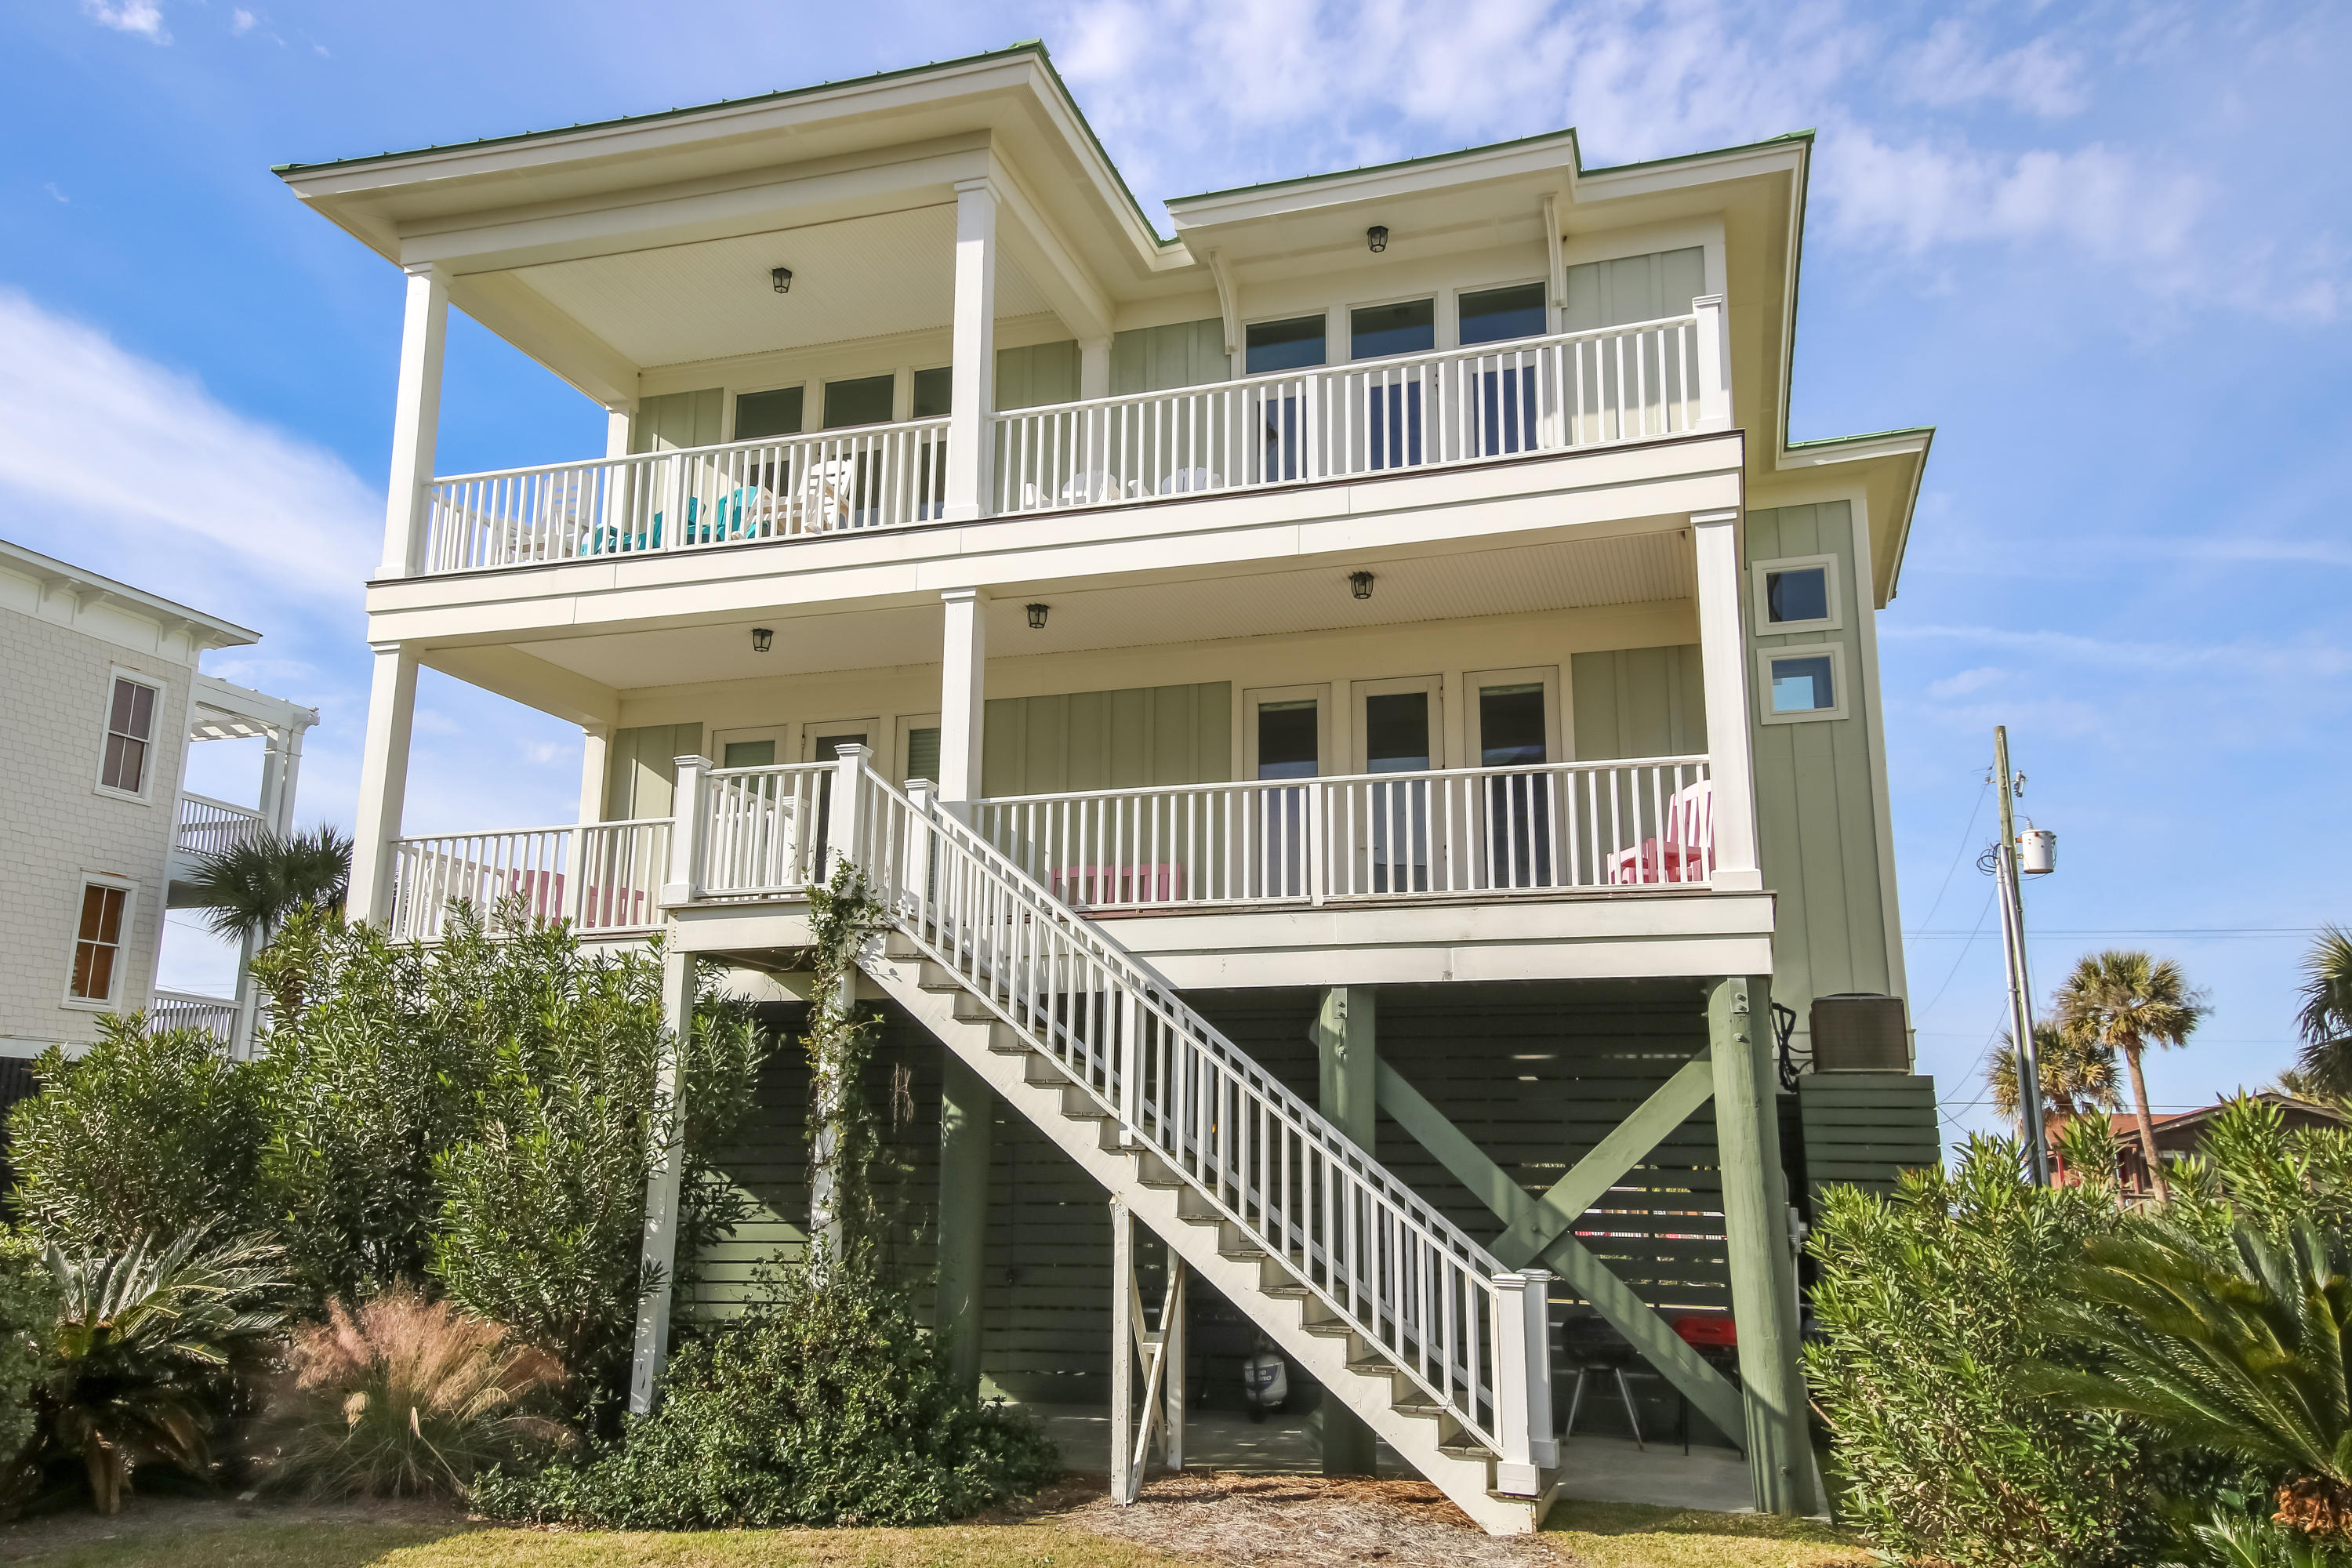 East Folly Beach Shores Homes For Sale - 1681 Ashley A, Folly Beach, SC - 35